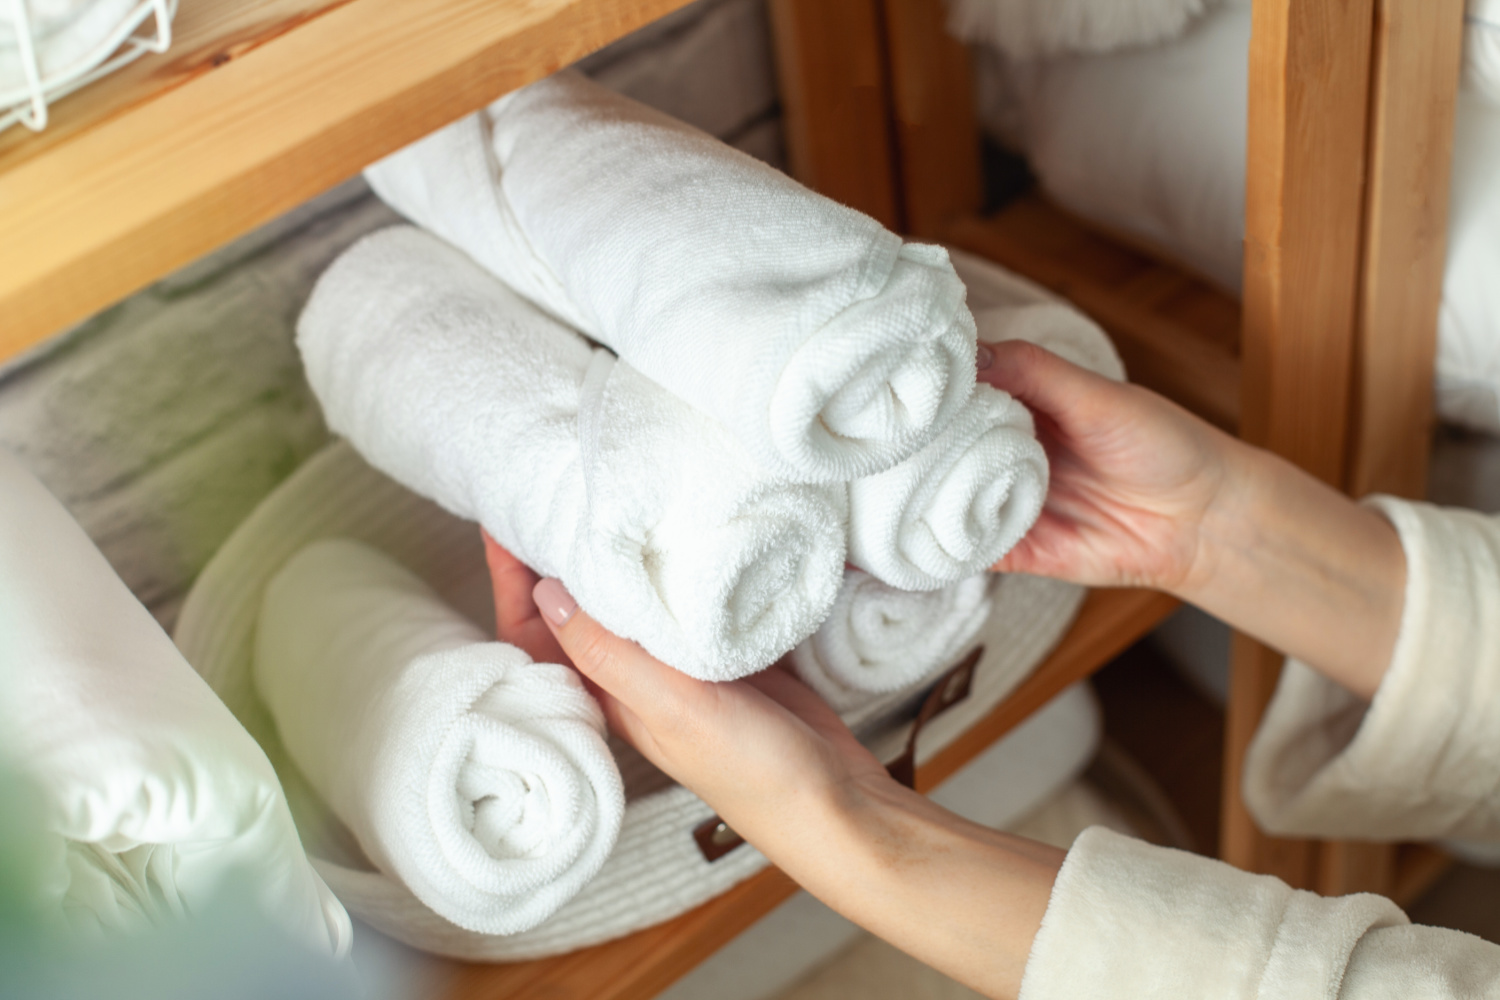 Woman in warm bathrobe is placing basket of rolled cotton bath towels on wooden shelf of linen closet together with bed sheets, blankets, duvet and vase against white brick wall.